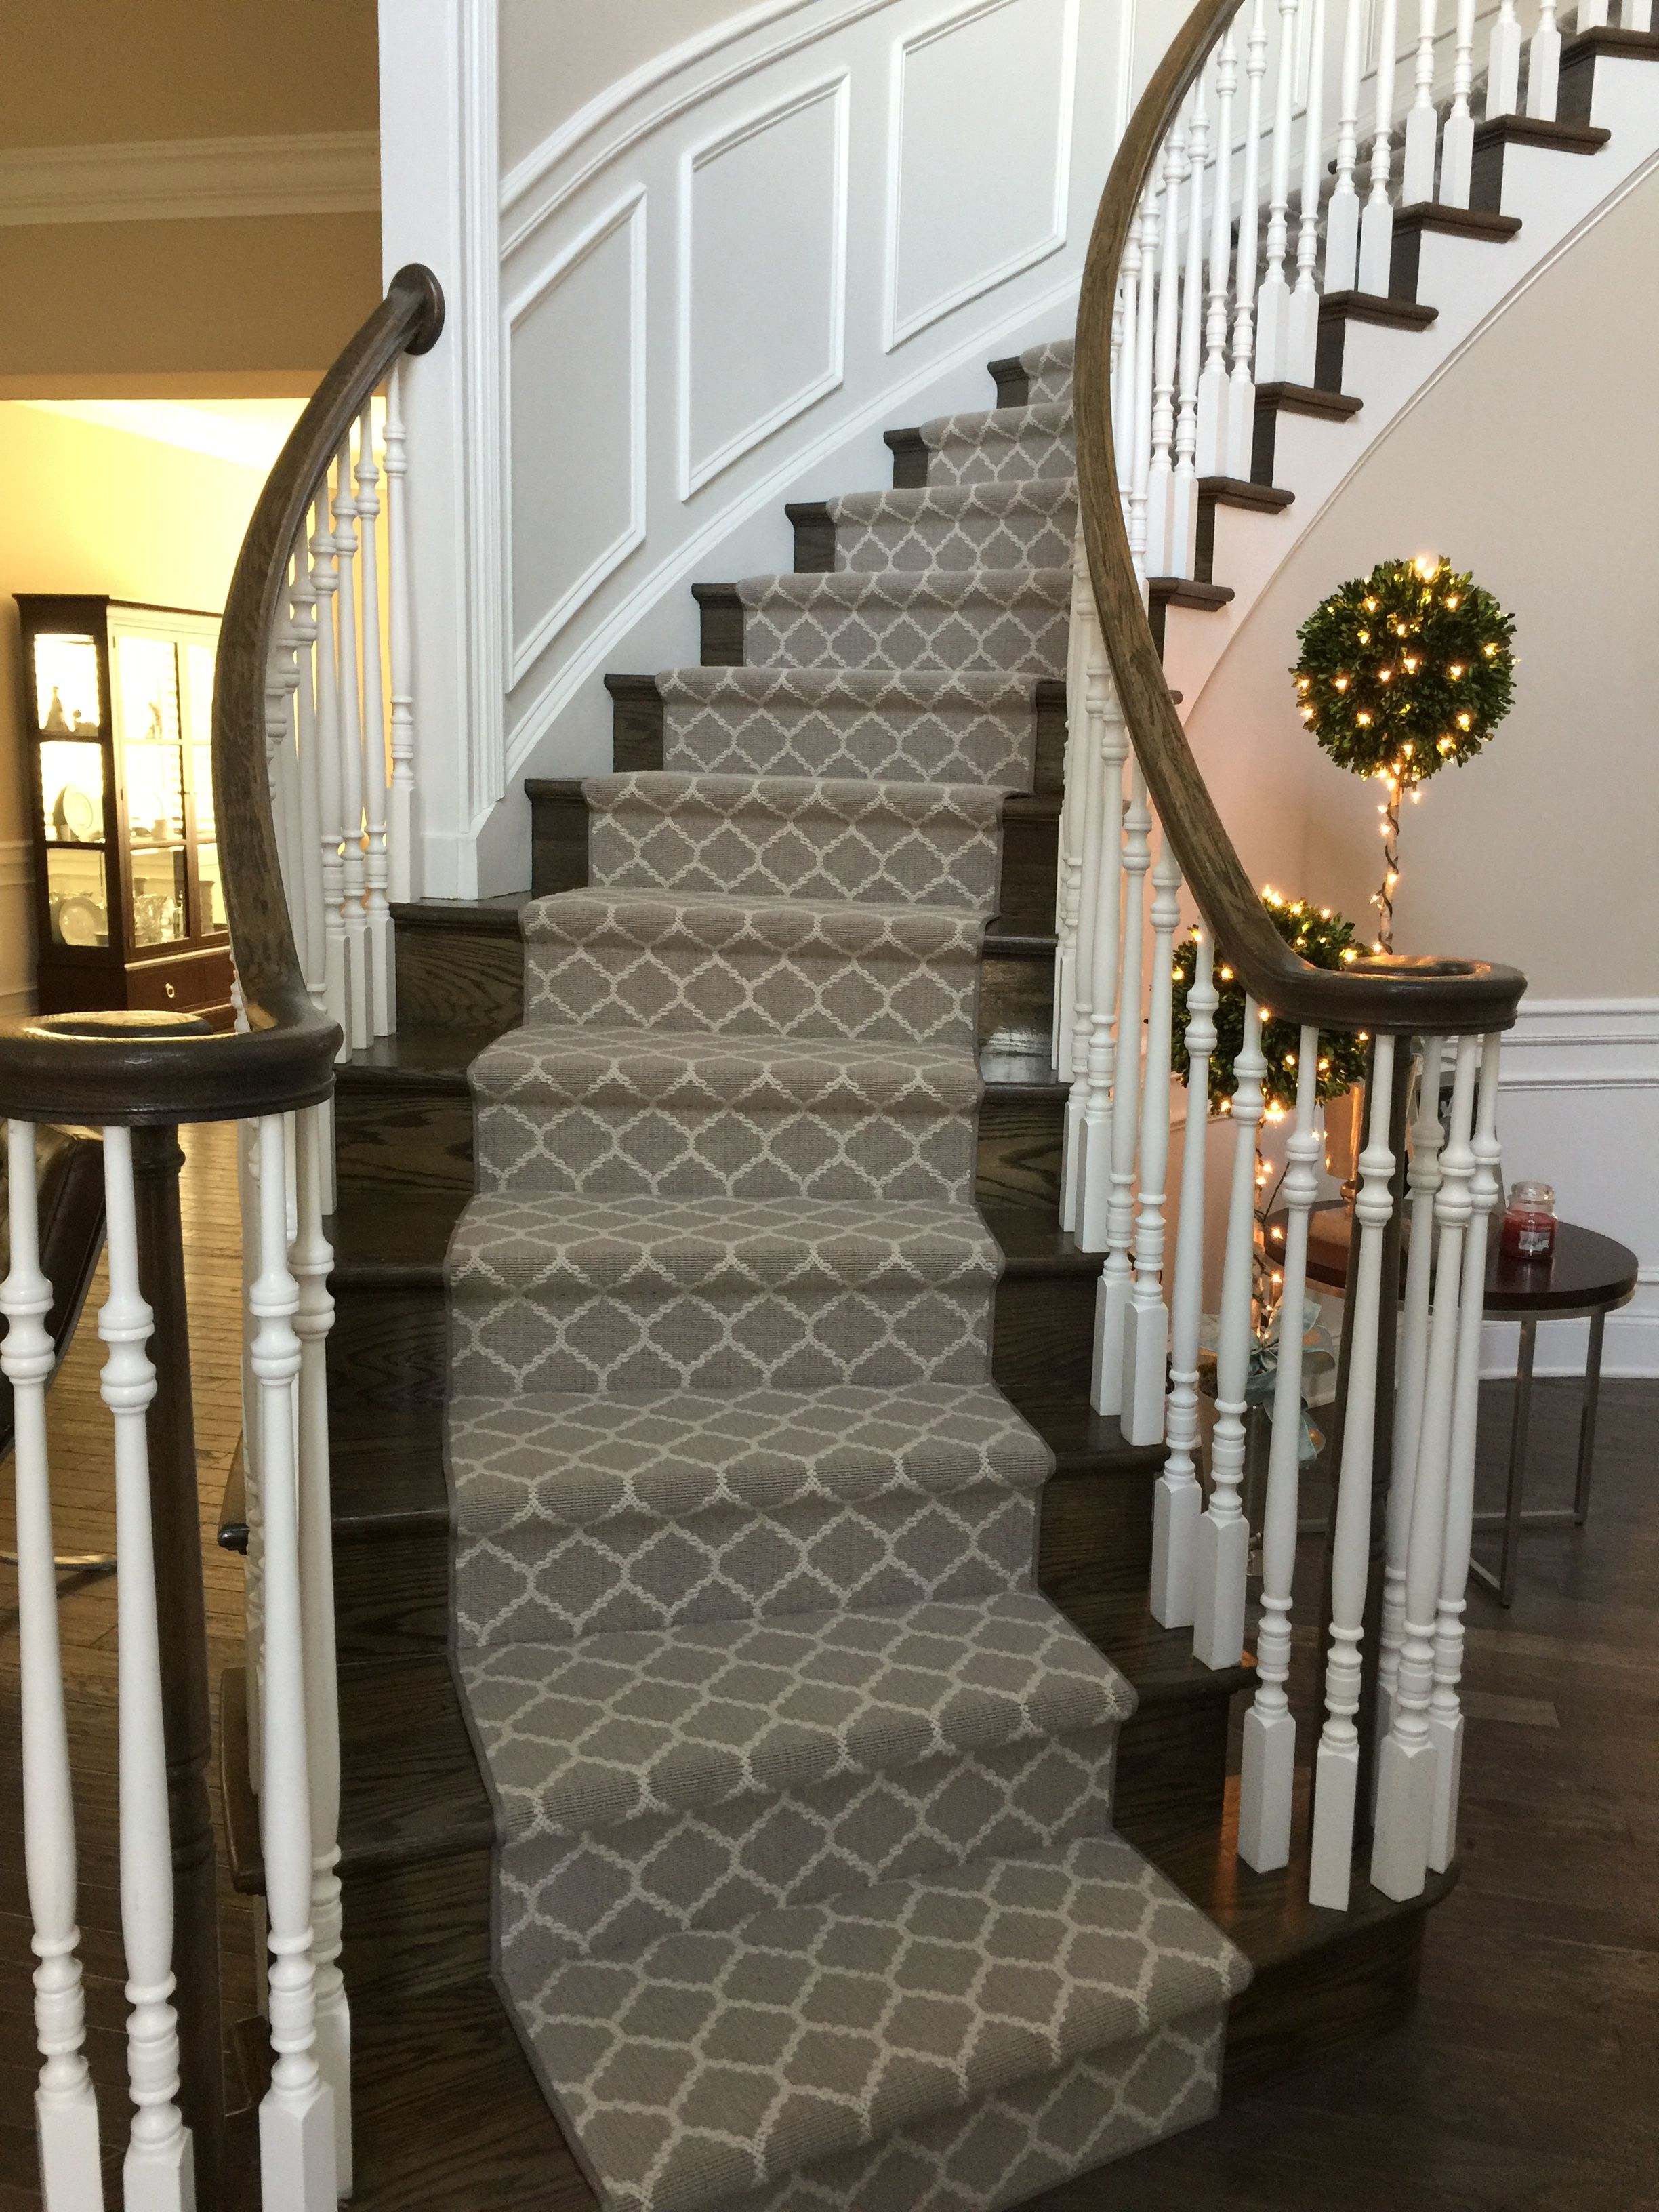 Carpet Runner On Curved Staircase New House Ideas In